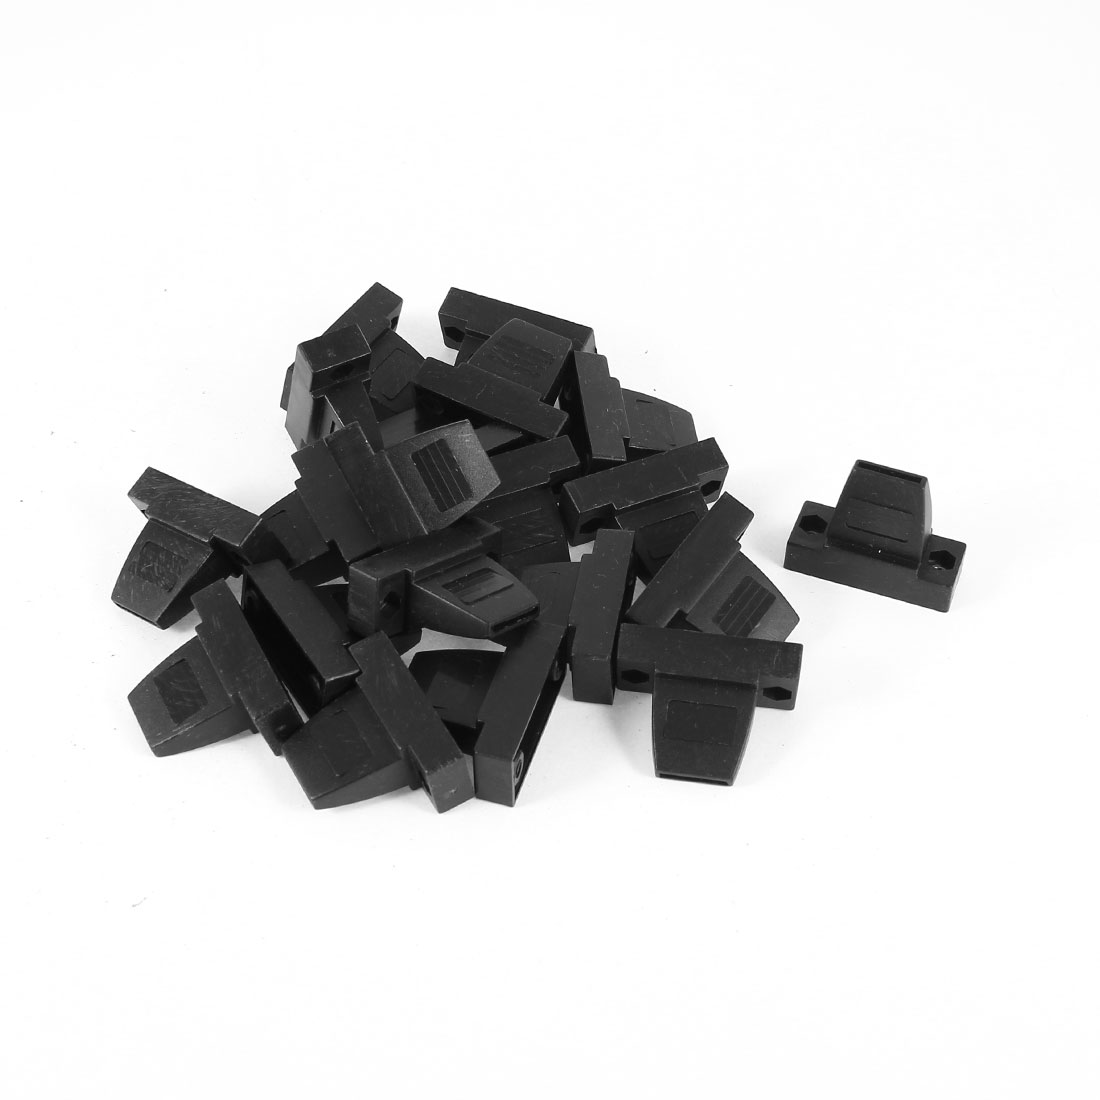 20 Pcs Plastic Cover Shell Housing Protector Black for D Sub DB9 9Pin Connector